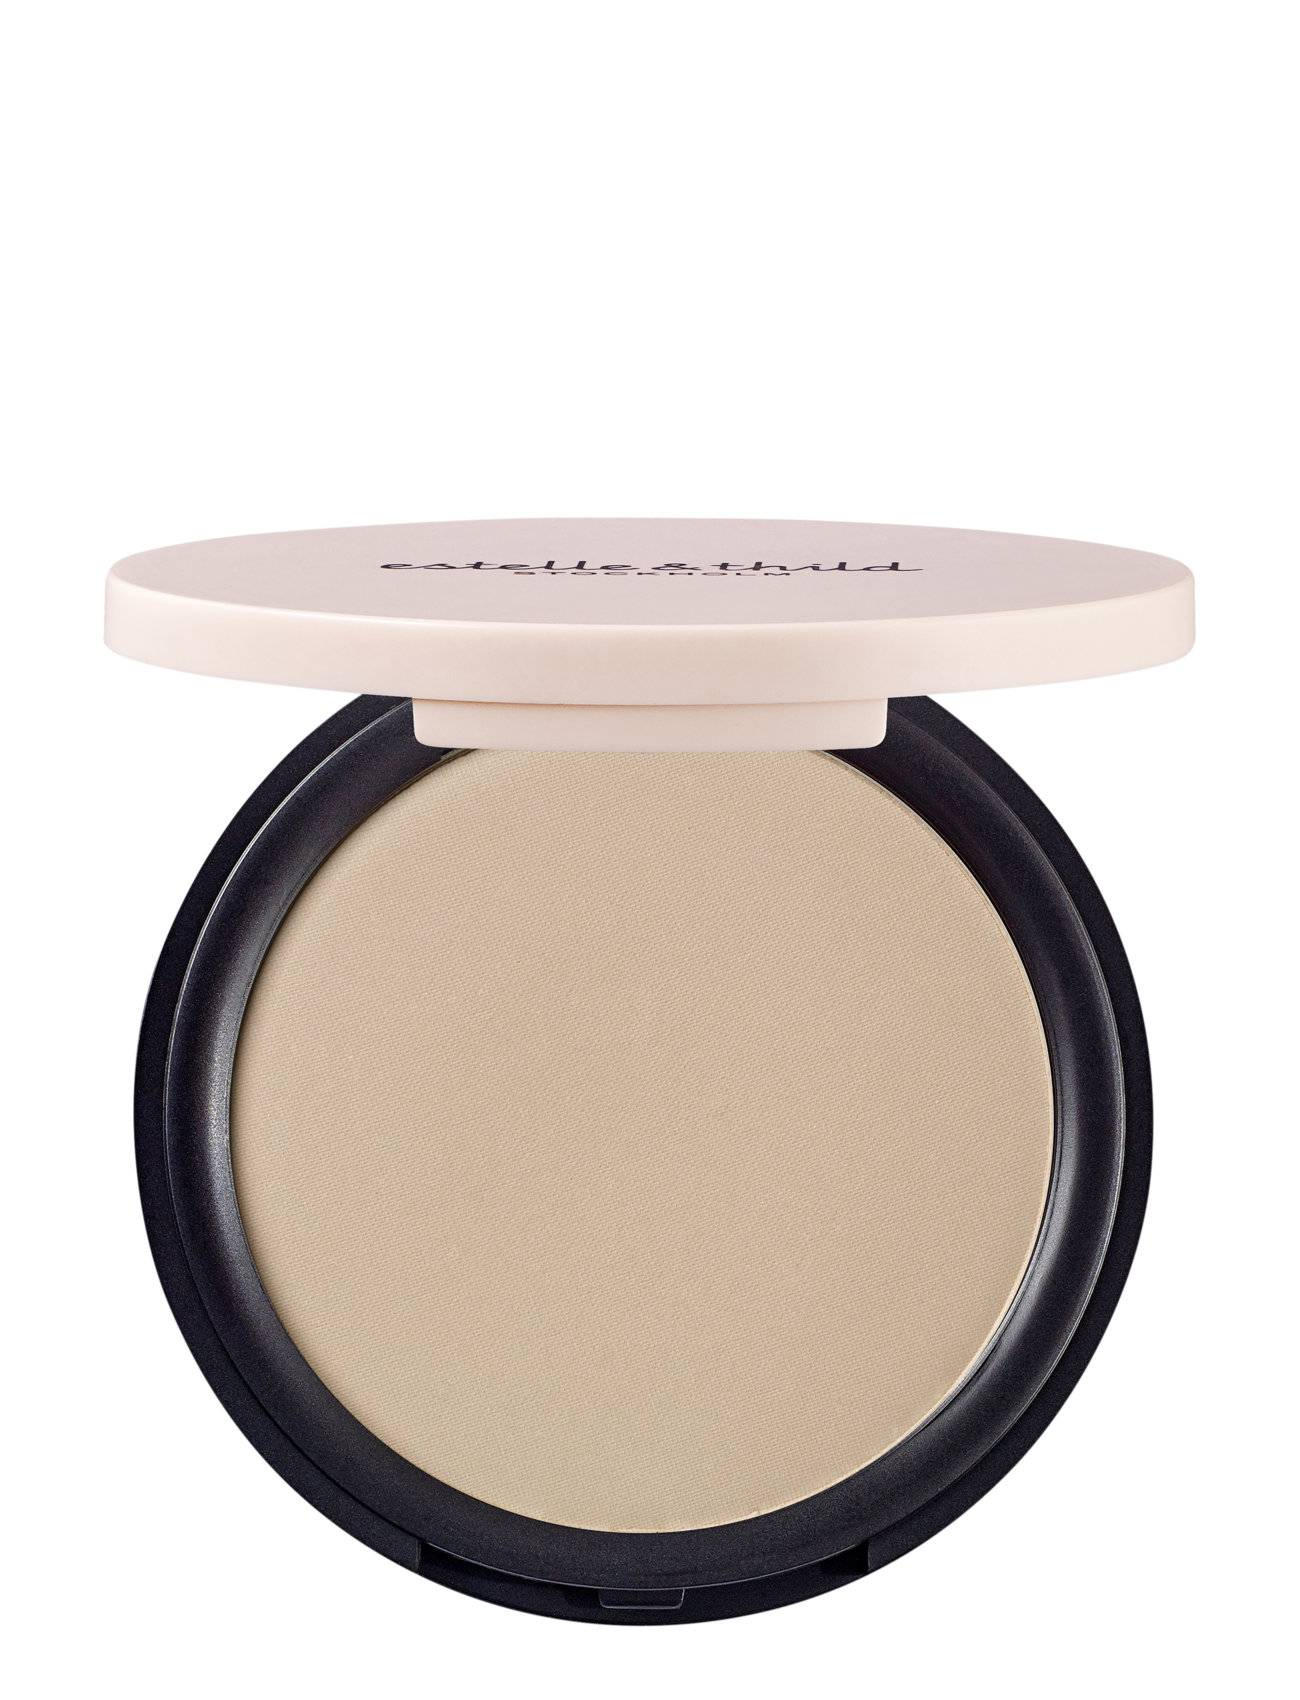 Estelle & Thild Biomineral Silky Finishing Powder 112 Light Pink